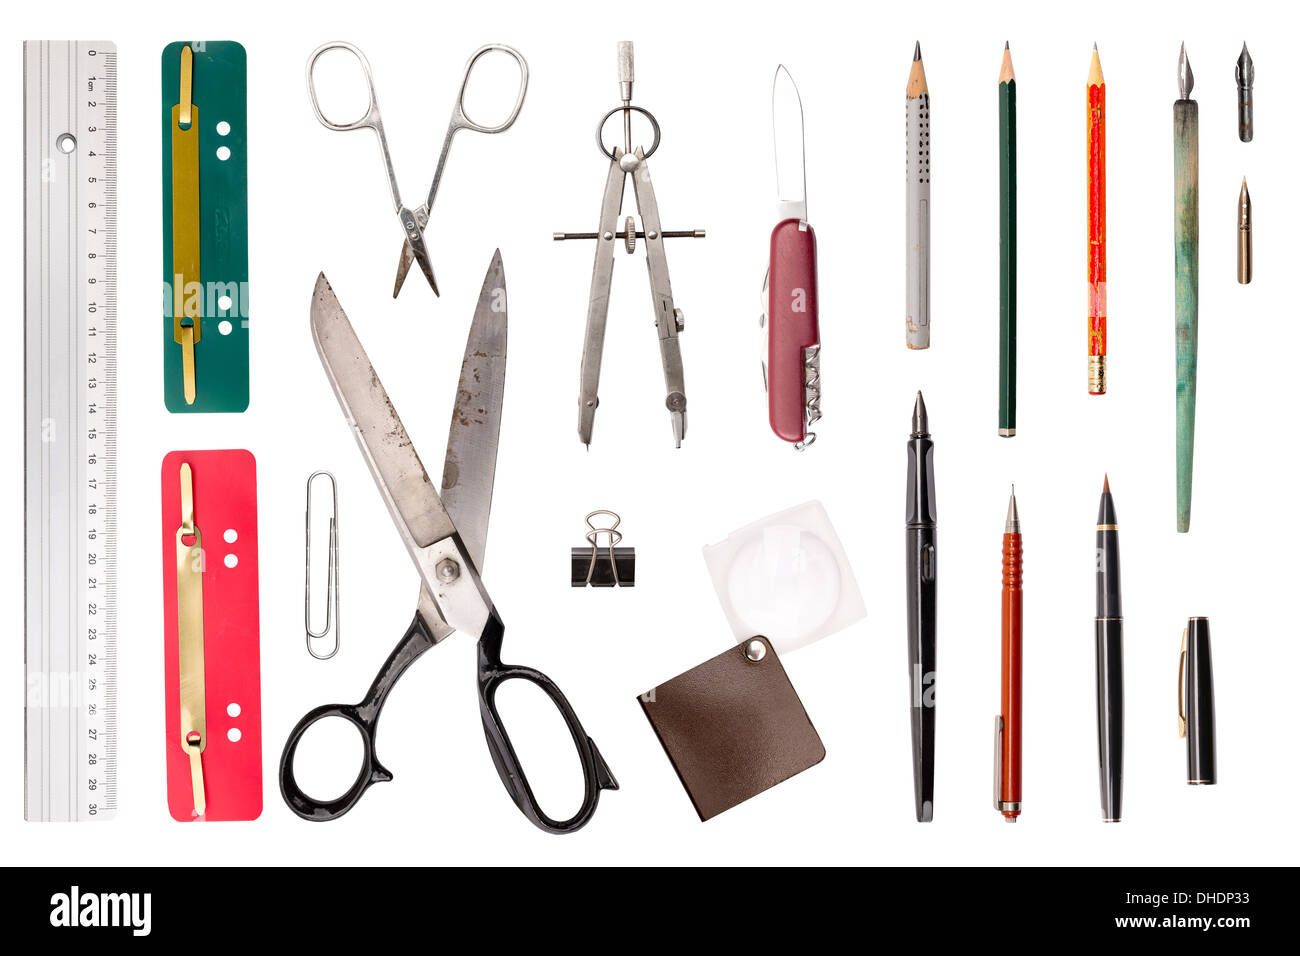 office drawing tools. Collection Of Old Used Office, Drawing Tools, Isolated On White. Office Tools I